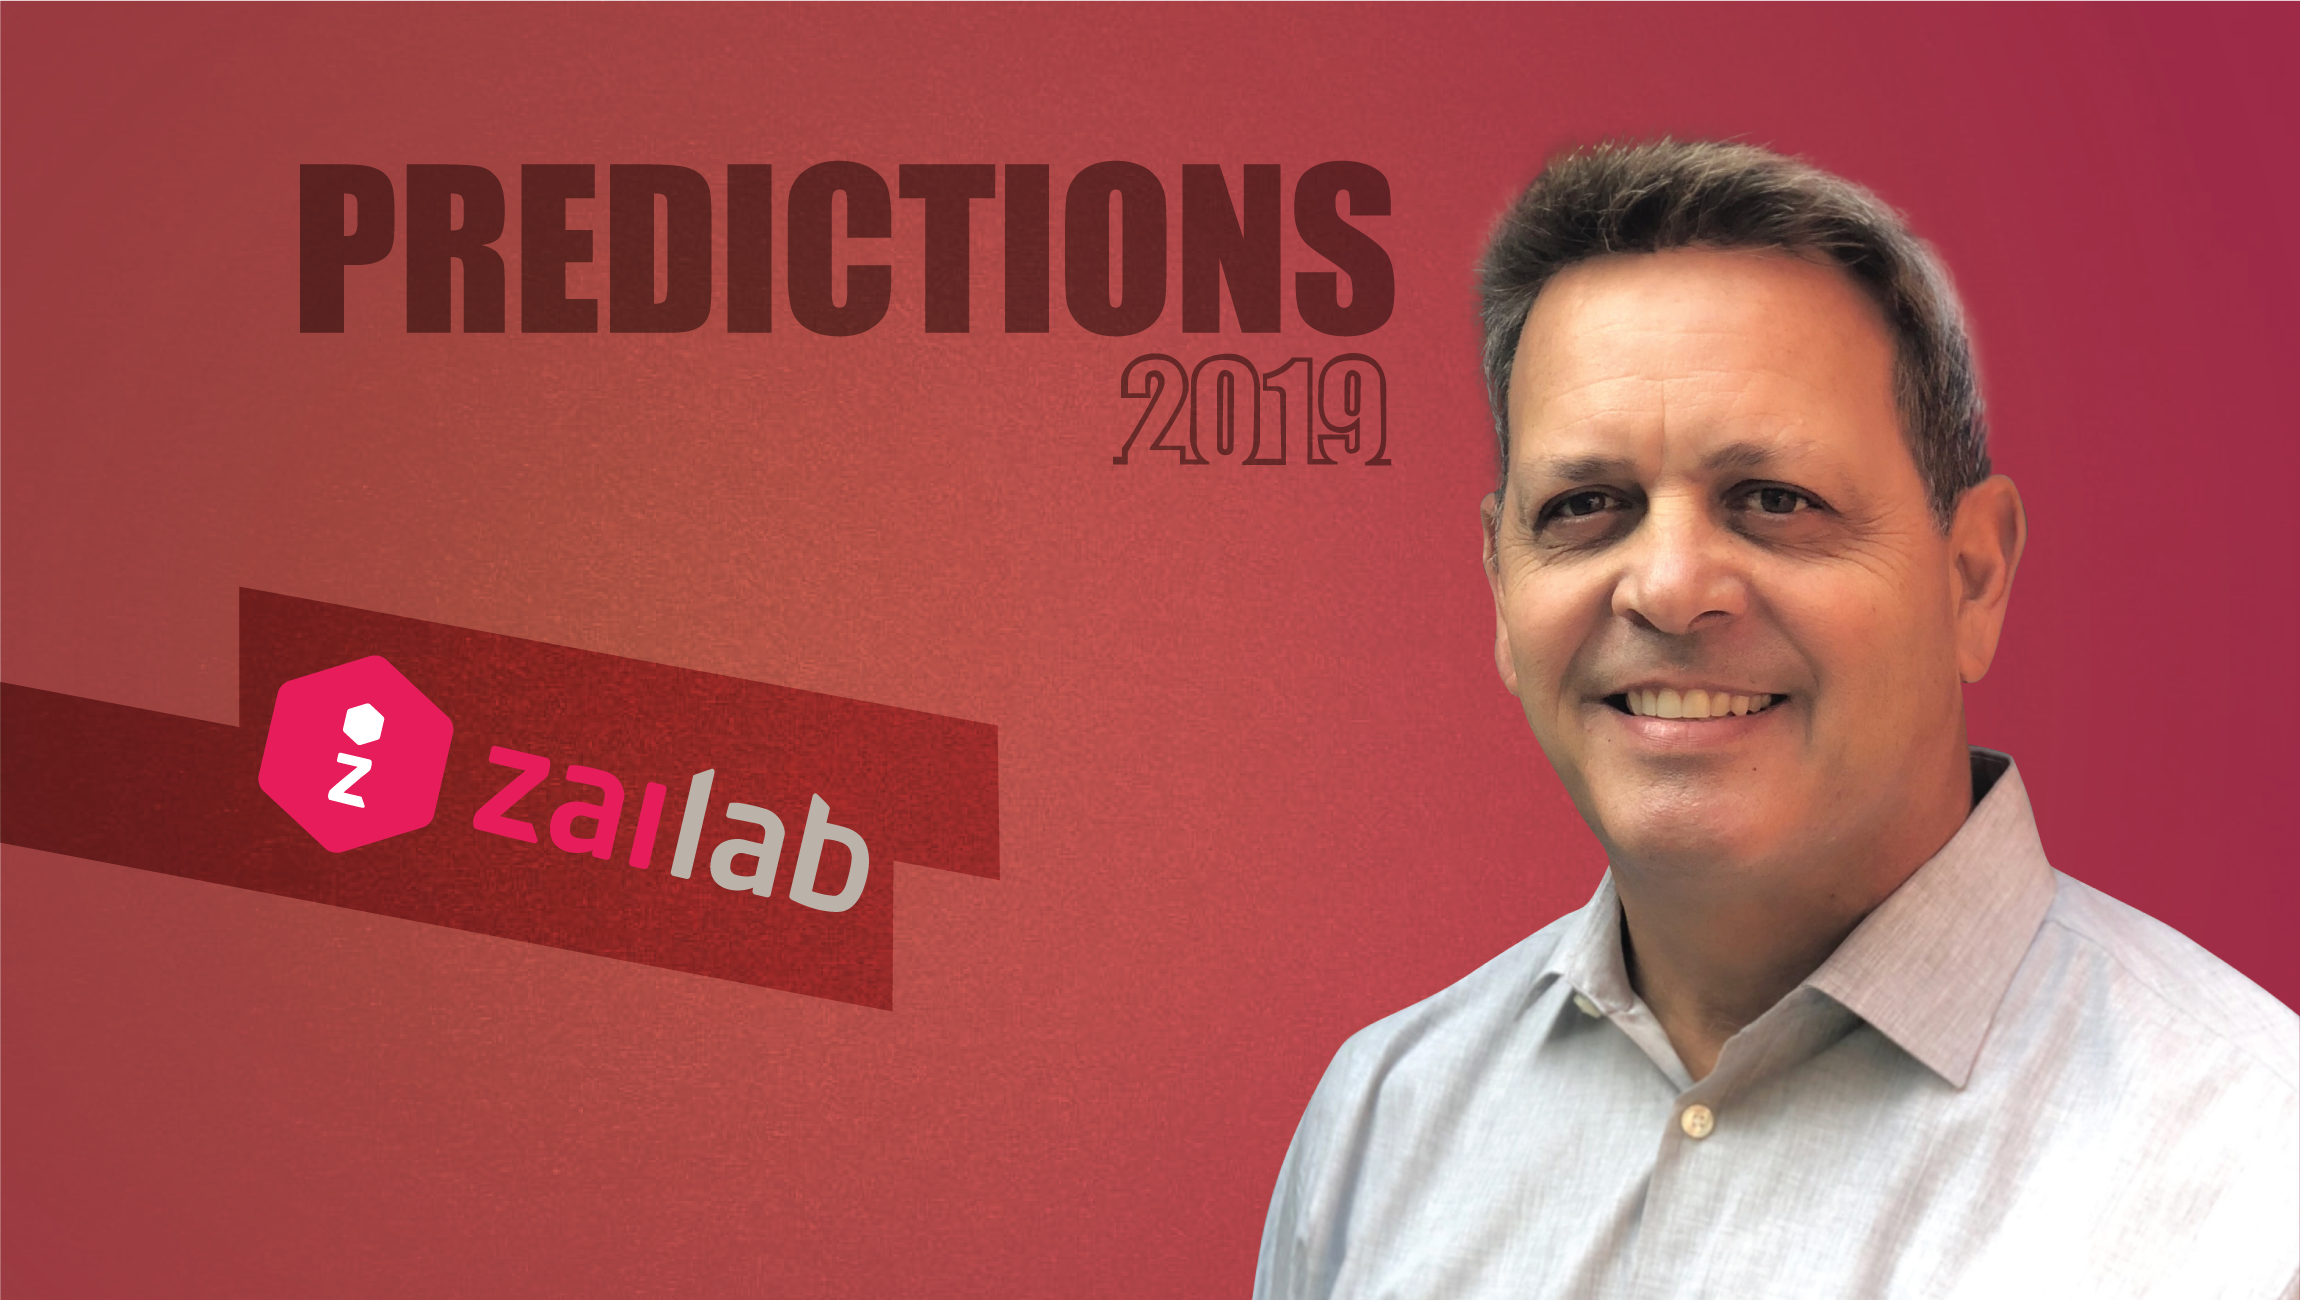 Salestech Predictions 2019: Interview With Micheal Cibelli, SVP of Sales at Zailab